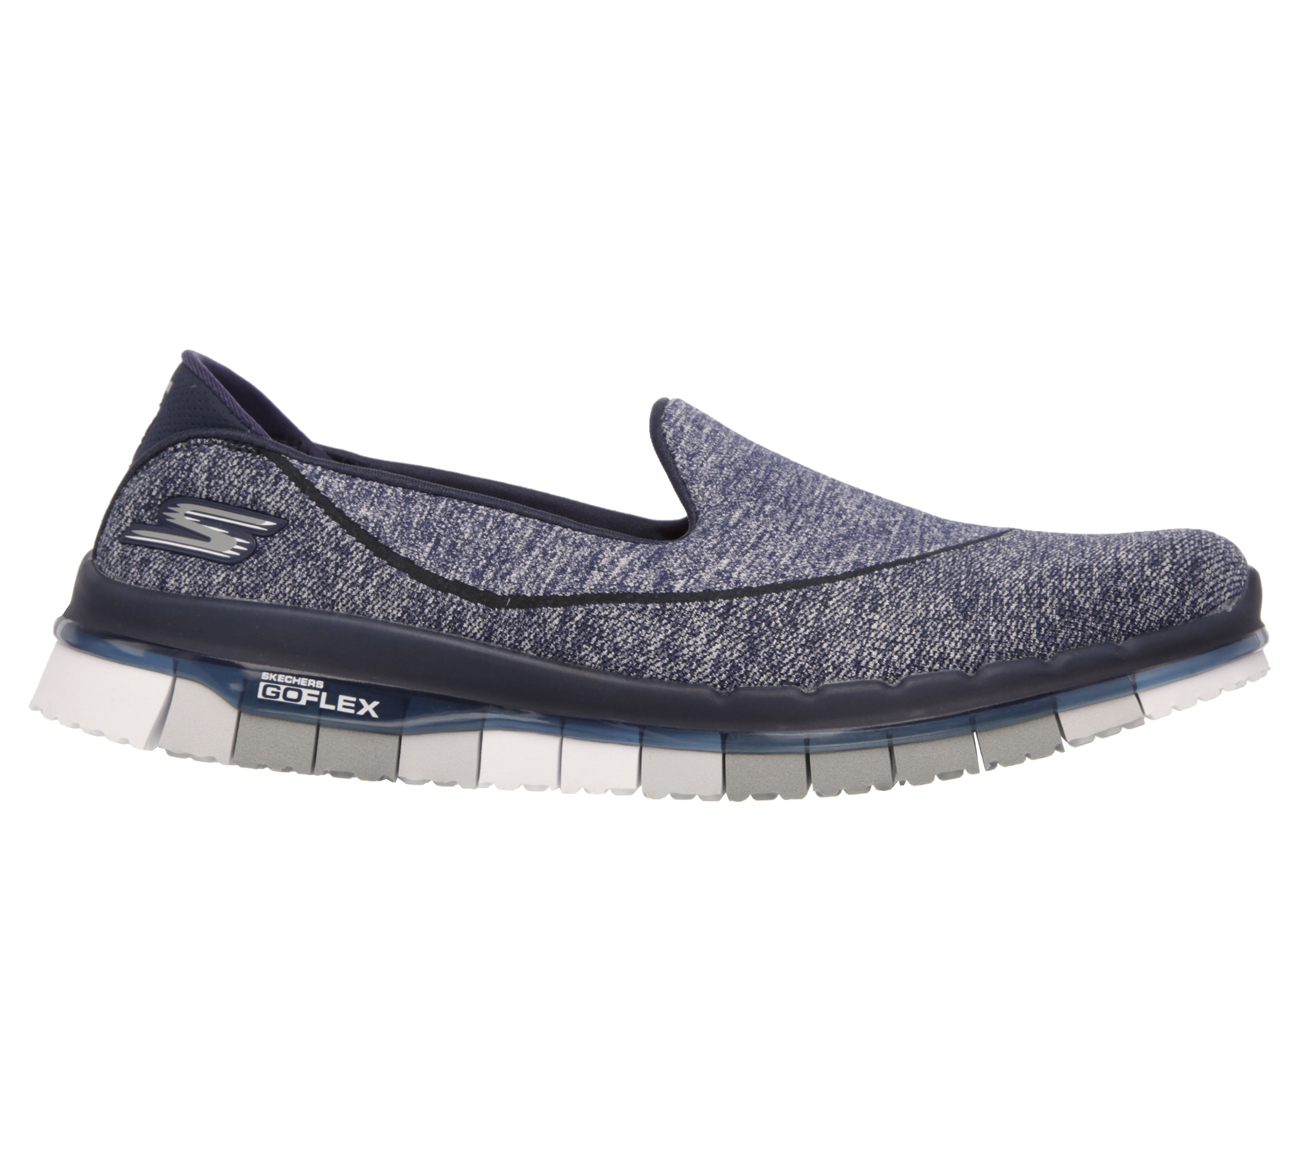 Skechers-Go Flex Slip On-NVGY-$149.90